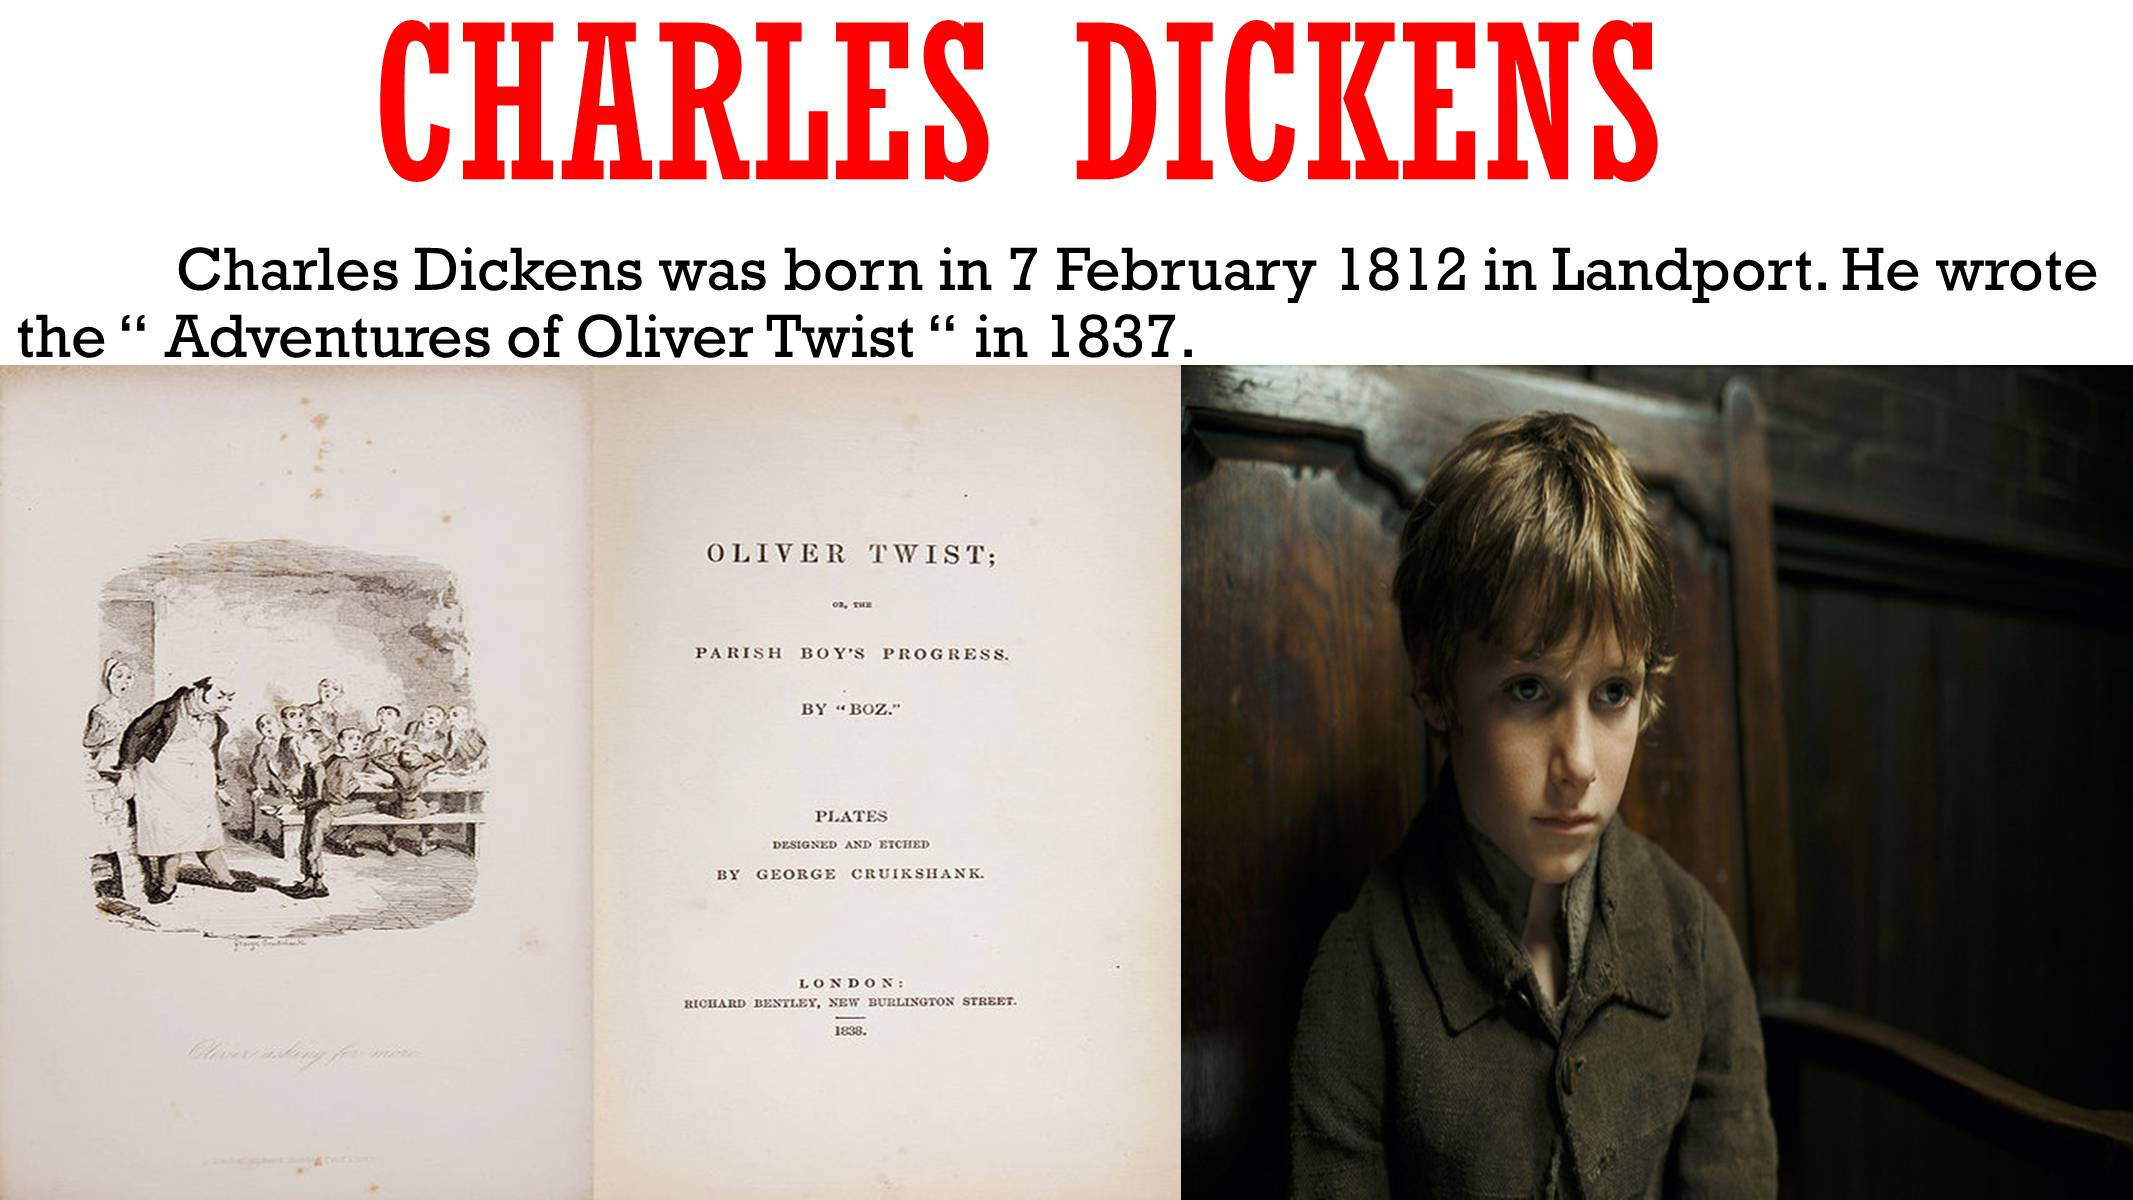 a description of charles dickens born at landport in portsea 7 february 2012 saw the 200th anniversary of the birth of charles dickens marshalsea debtor's prison dickens born in landport on 7 february 1812, charles.